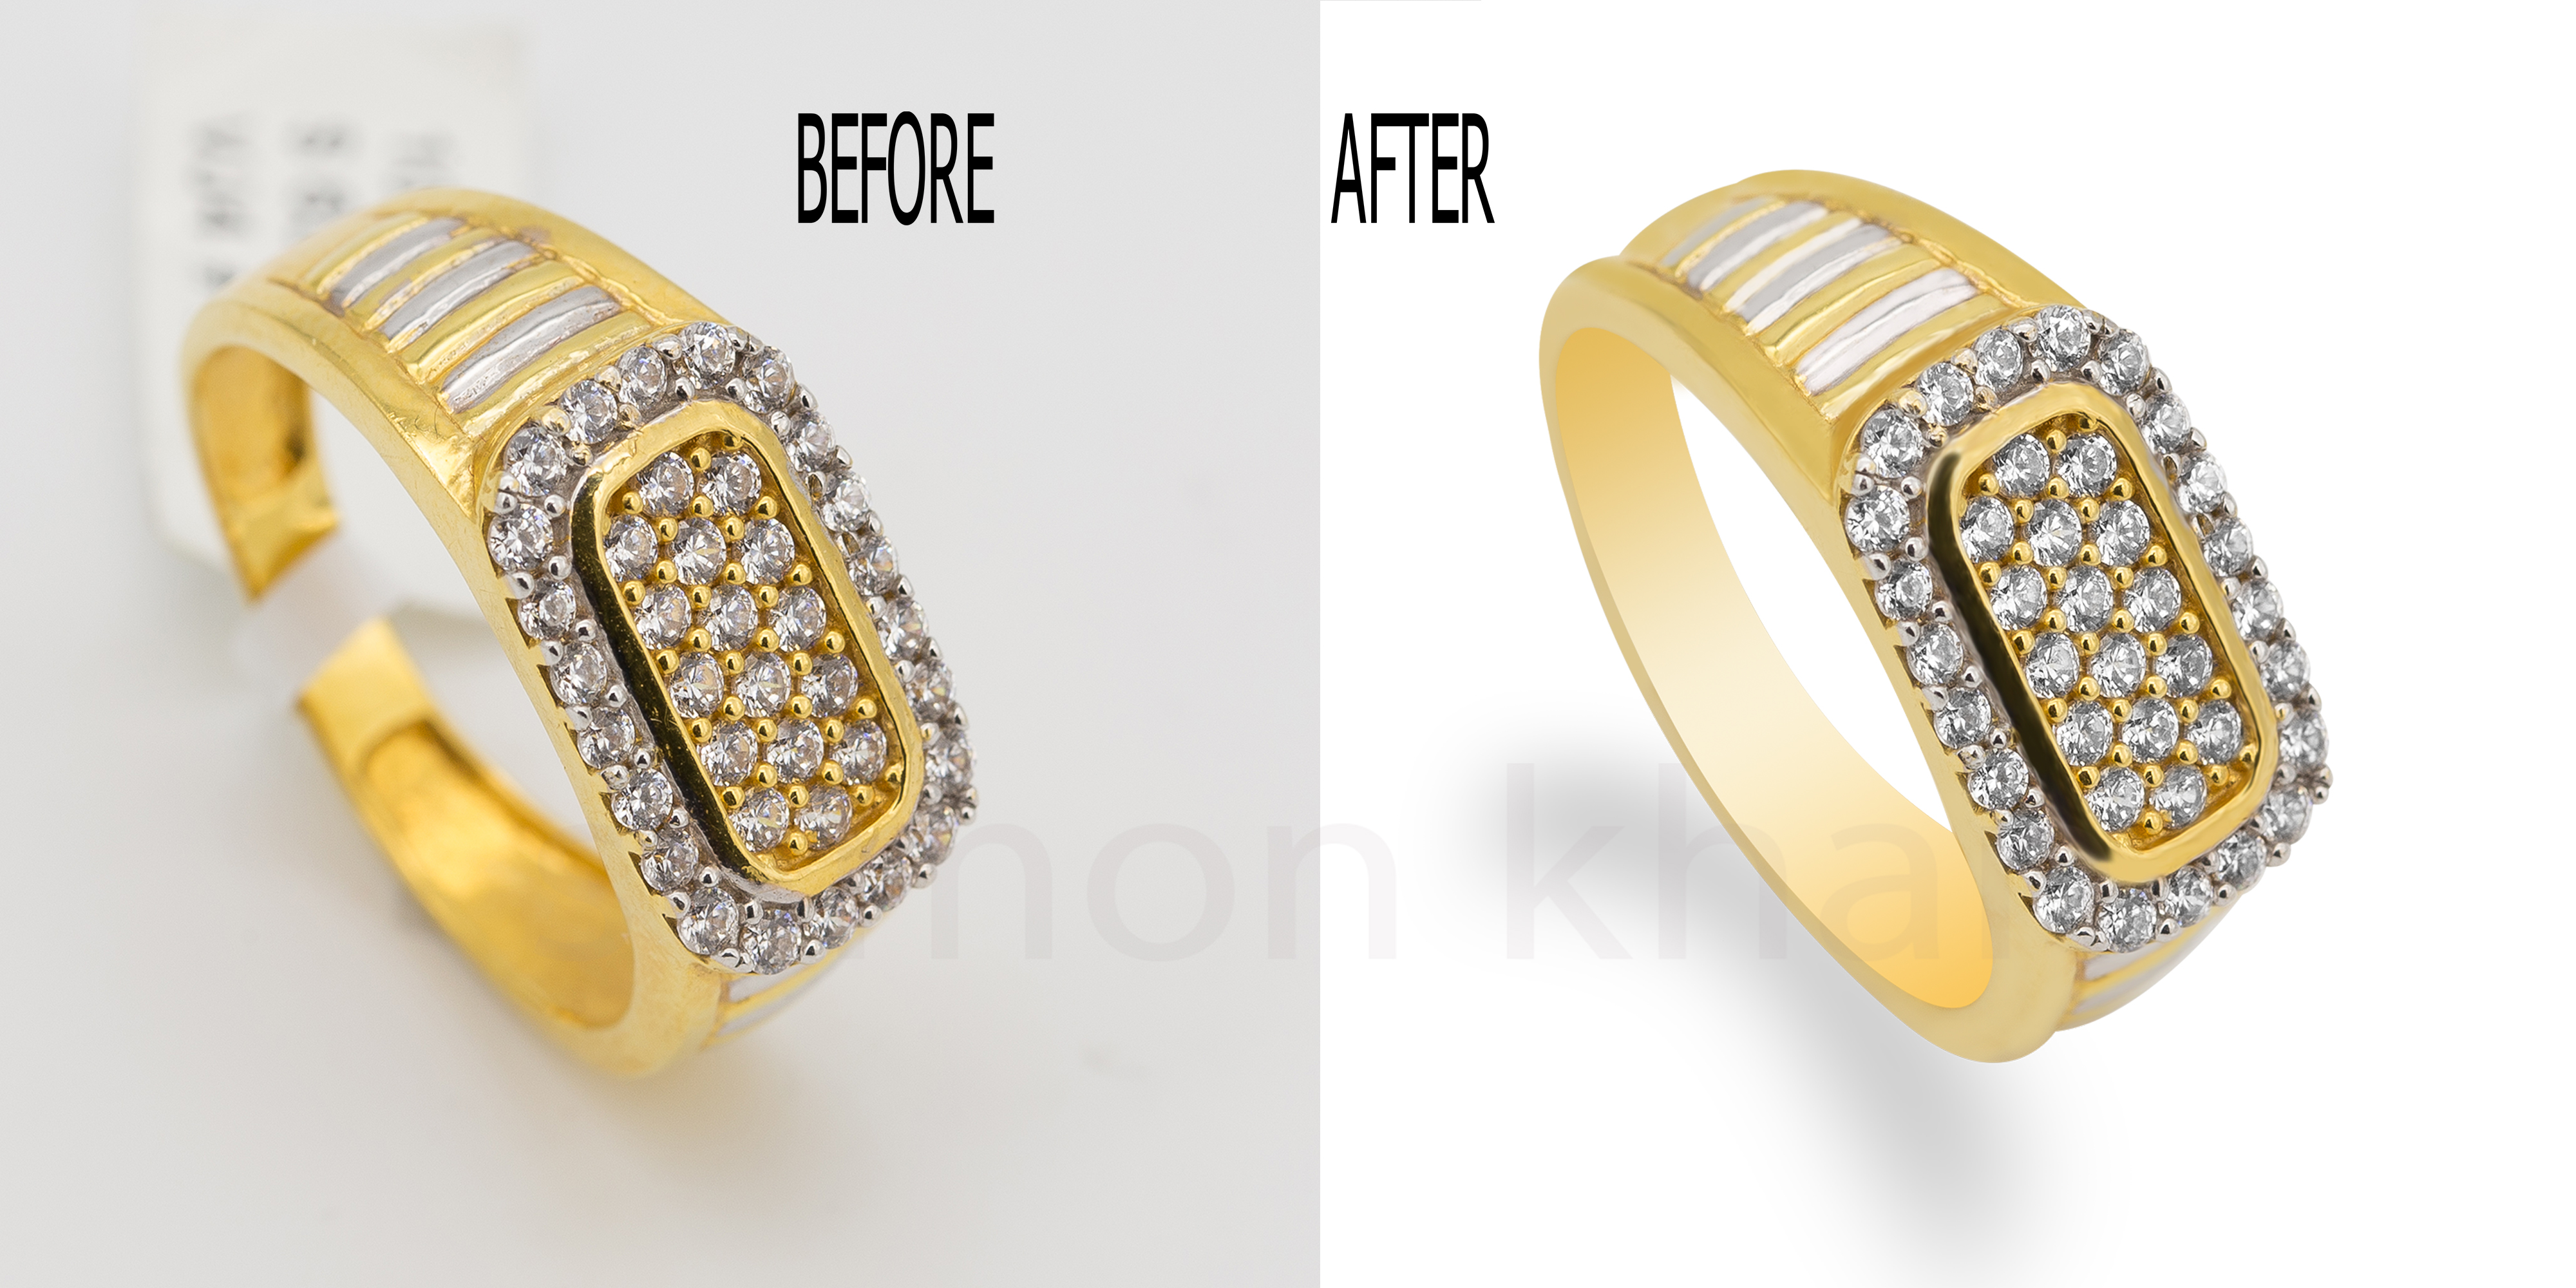 Do High End Jewelry Retouching With High Quality within 24 hours